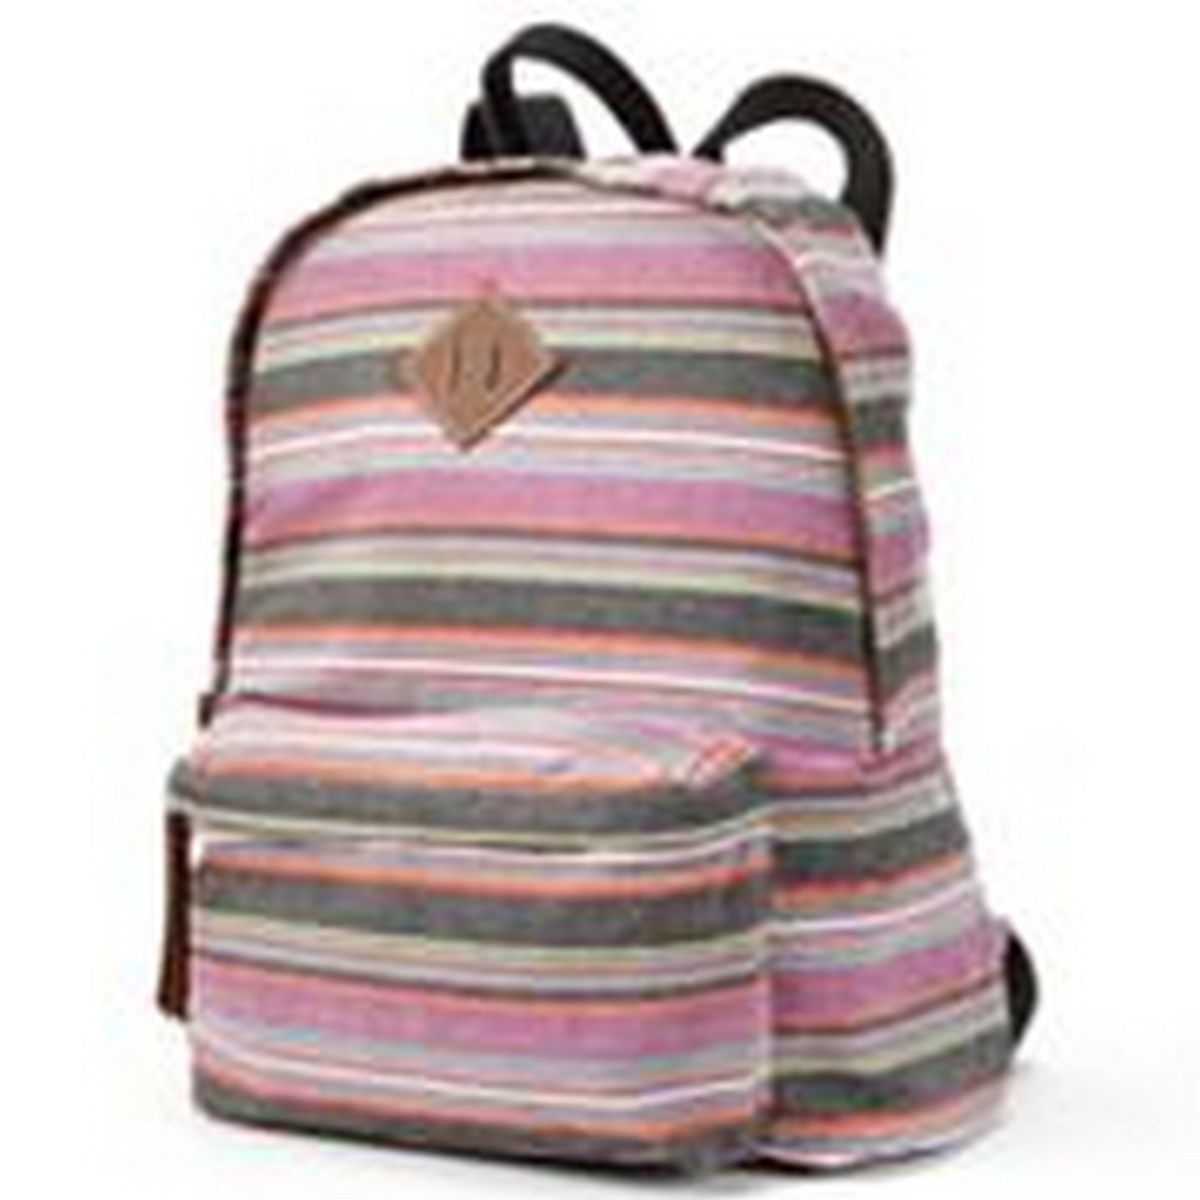 Candie's Striped Backpack Women's Girl's - NWT